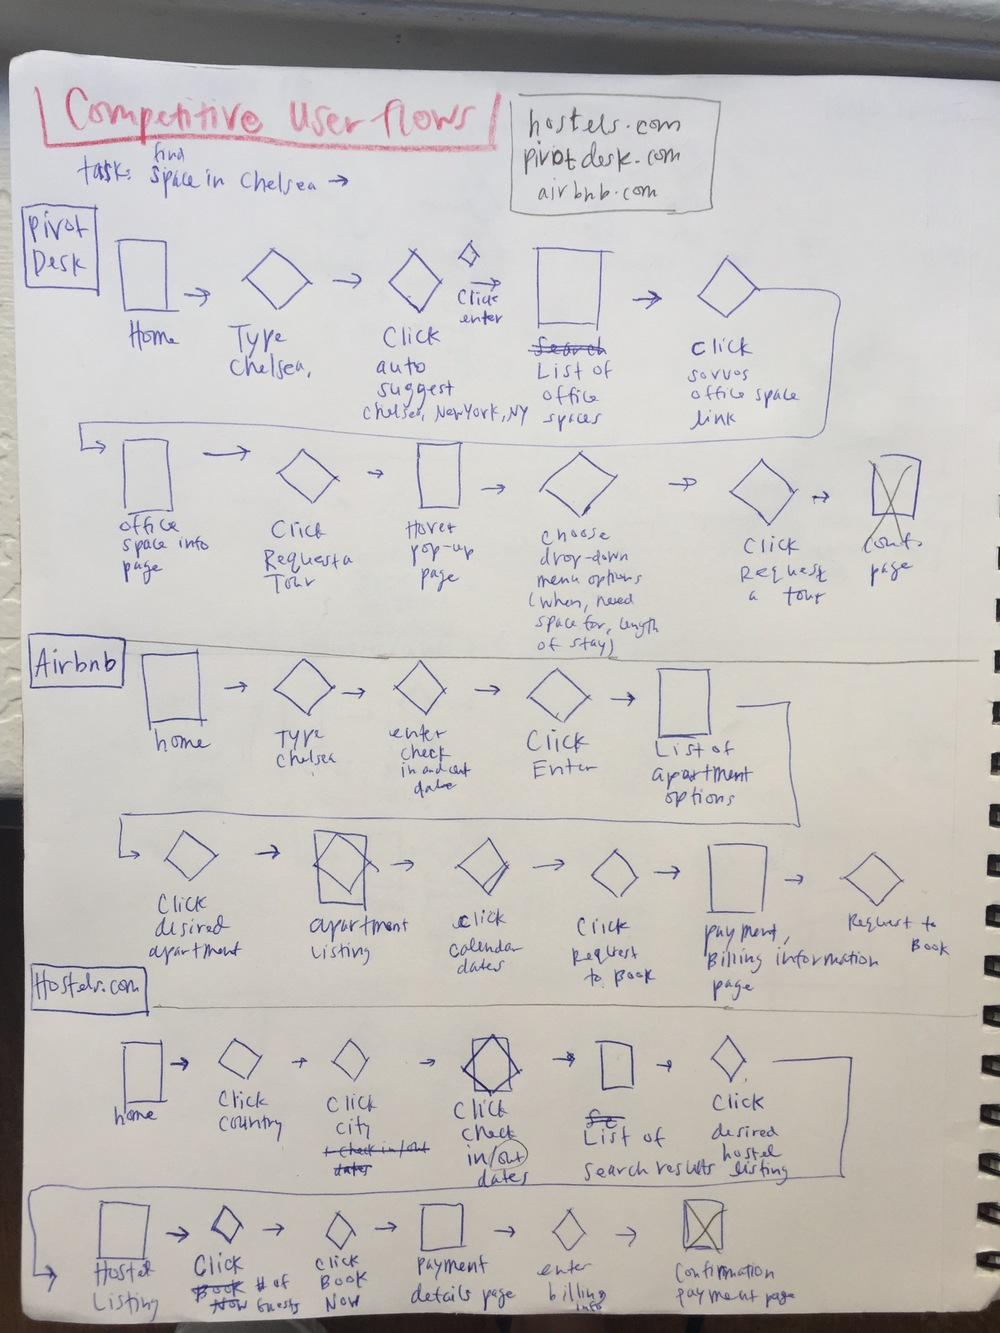 An initial pen and paper sketch of competitive user flows.